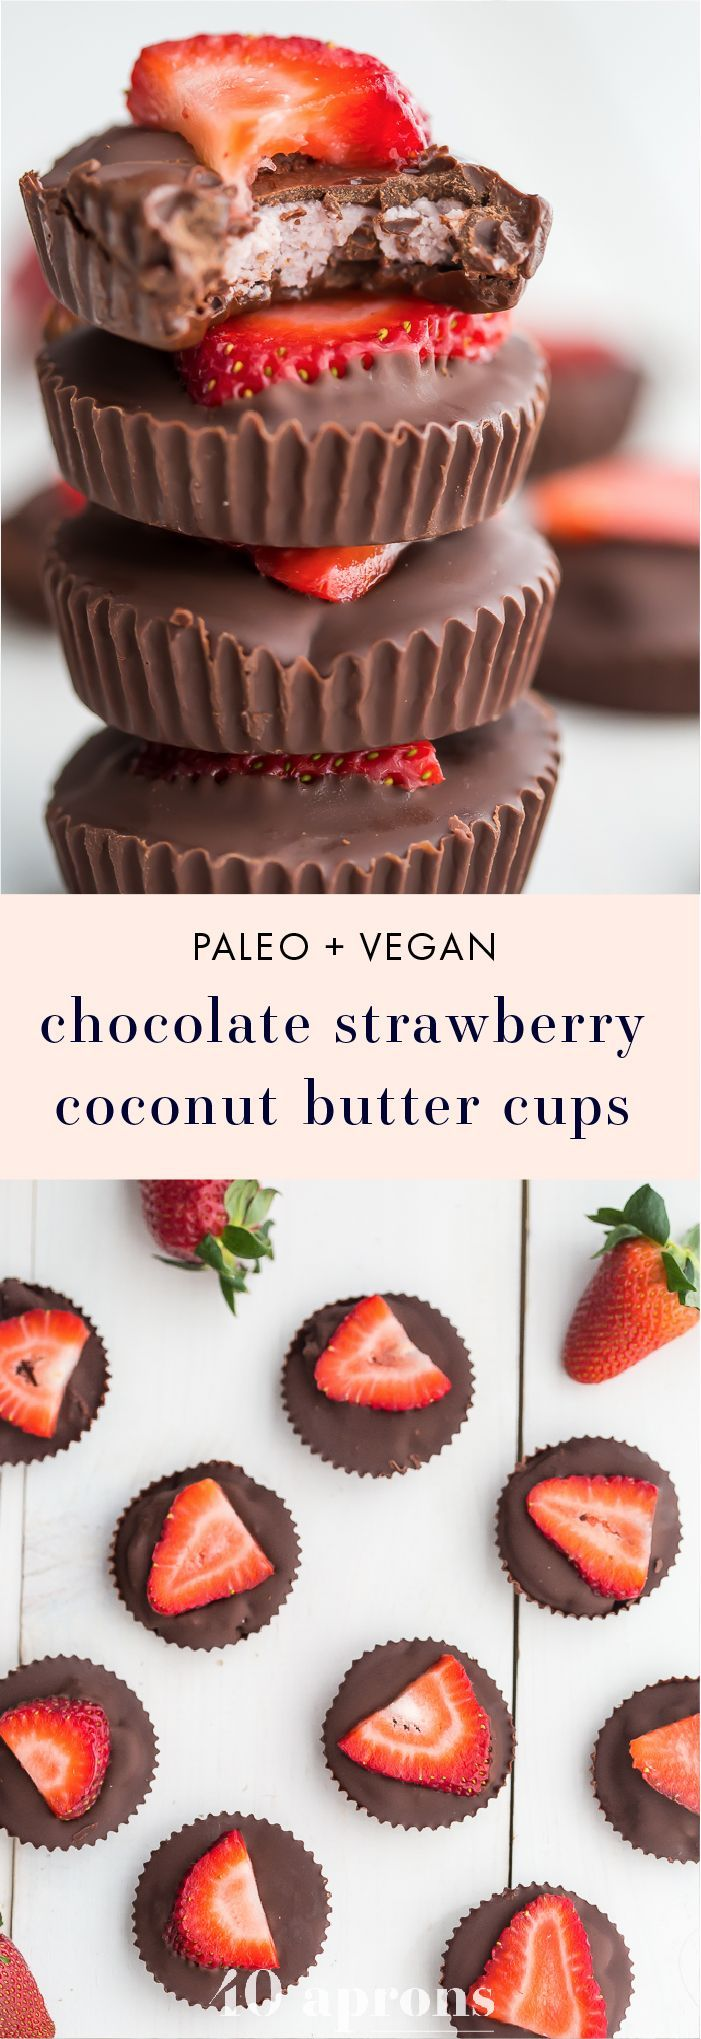 #chocolate #strawberry #coconut #butter #cups #vegan #paleo #candy #confectionary #sweets #sweetsforthesweet